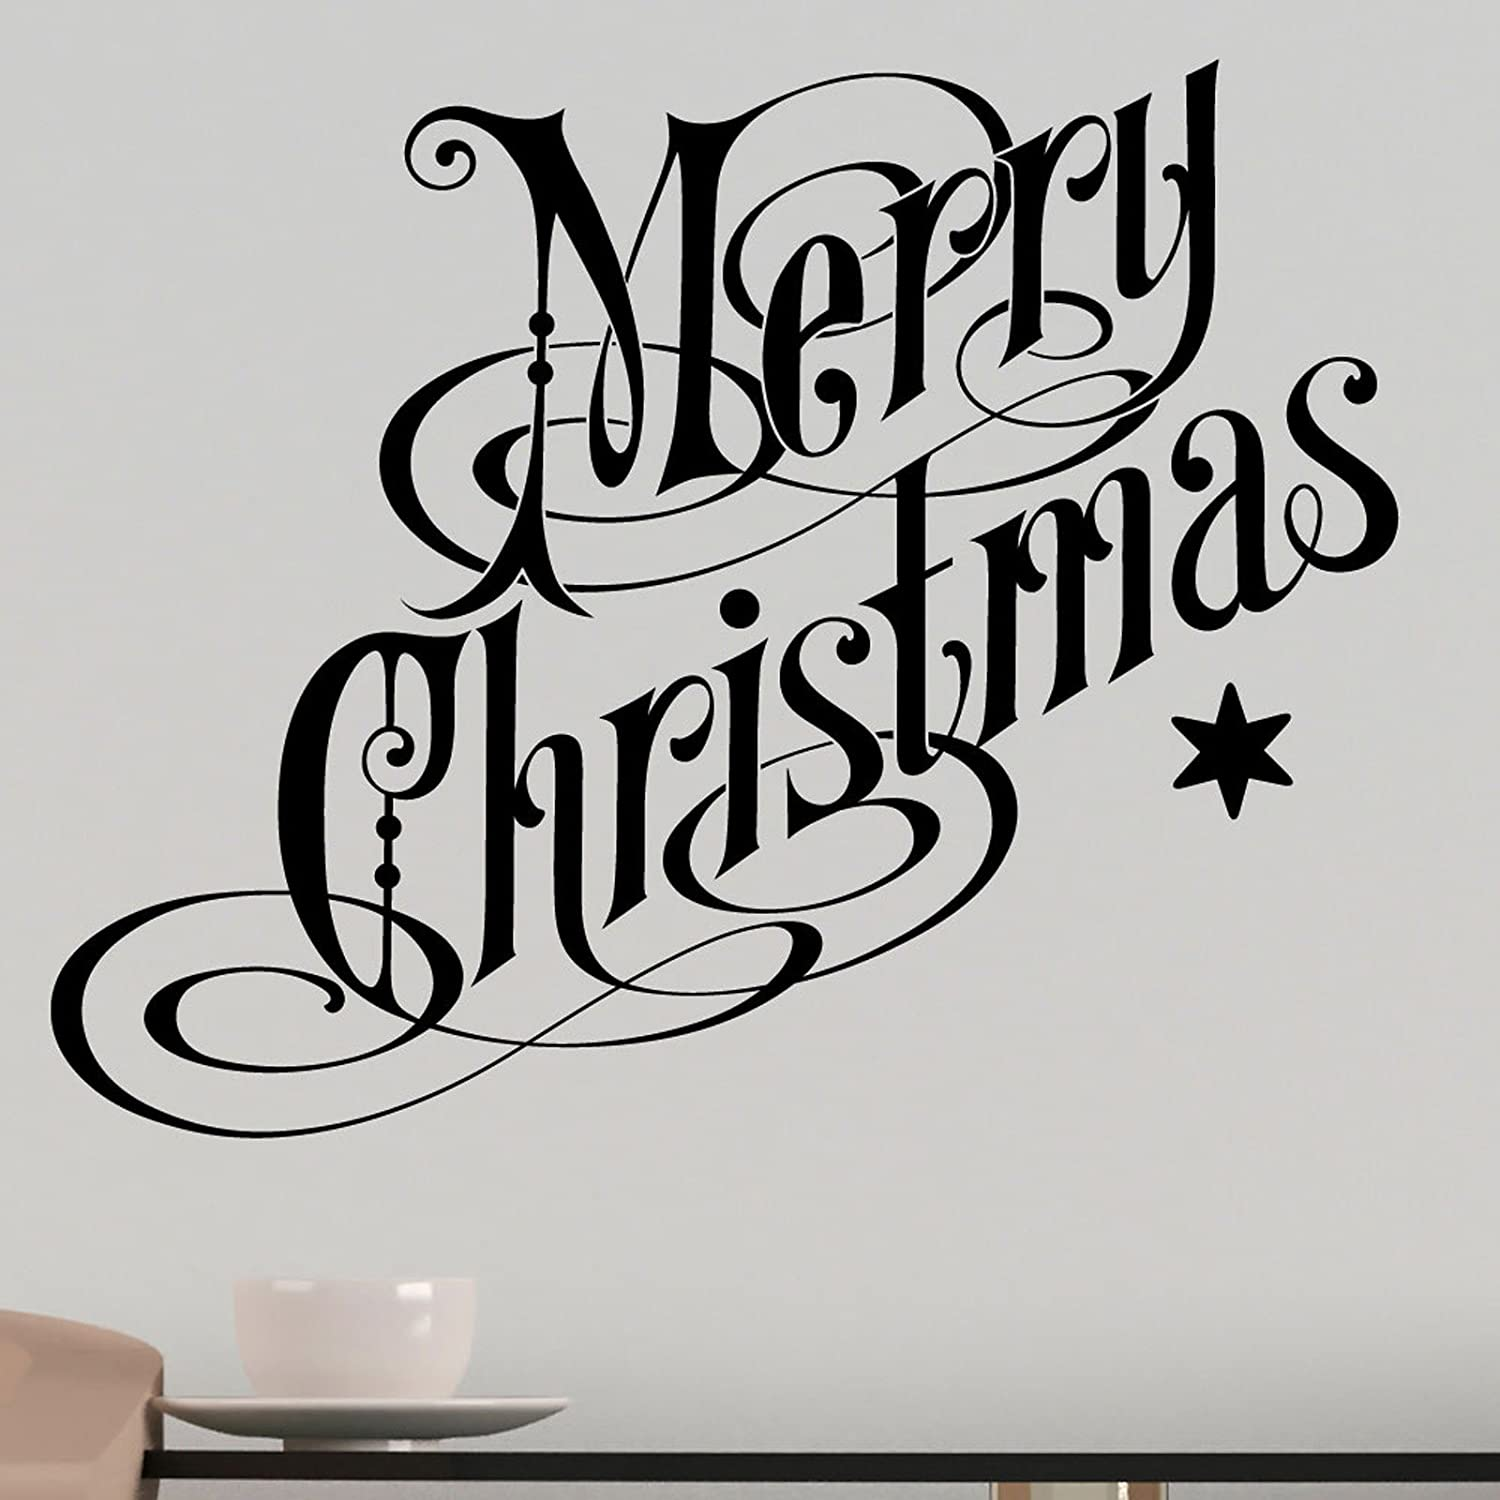 Christmas Wall Art Part - 38: Merry Christmas Wall Sticker Decal - Festive Wall Art Vinyl Xmas Decoration  - Choice Of 24 Colours - Removable Home Decor: Amazon.co.uk: Kitchen U0026 Home